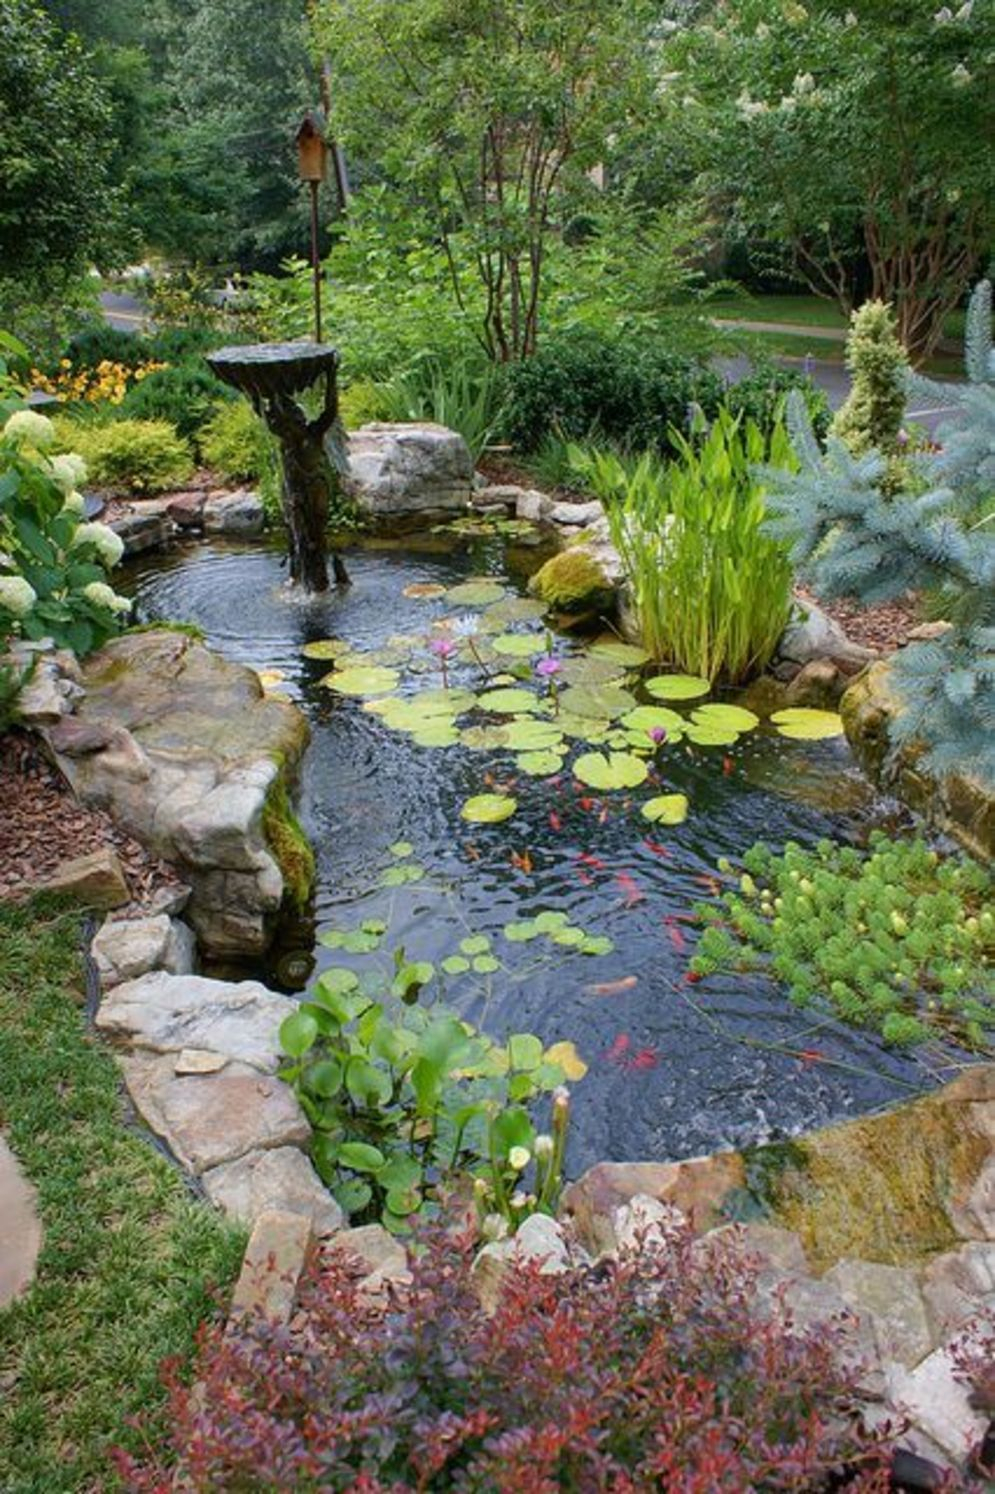 Brilliant Gardening Design Ideas You Need To Know In 202007